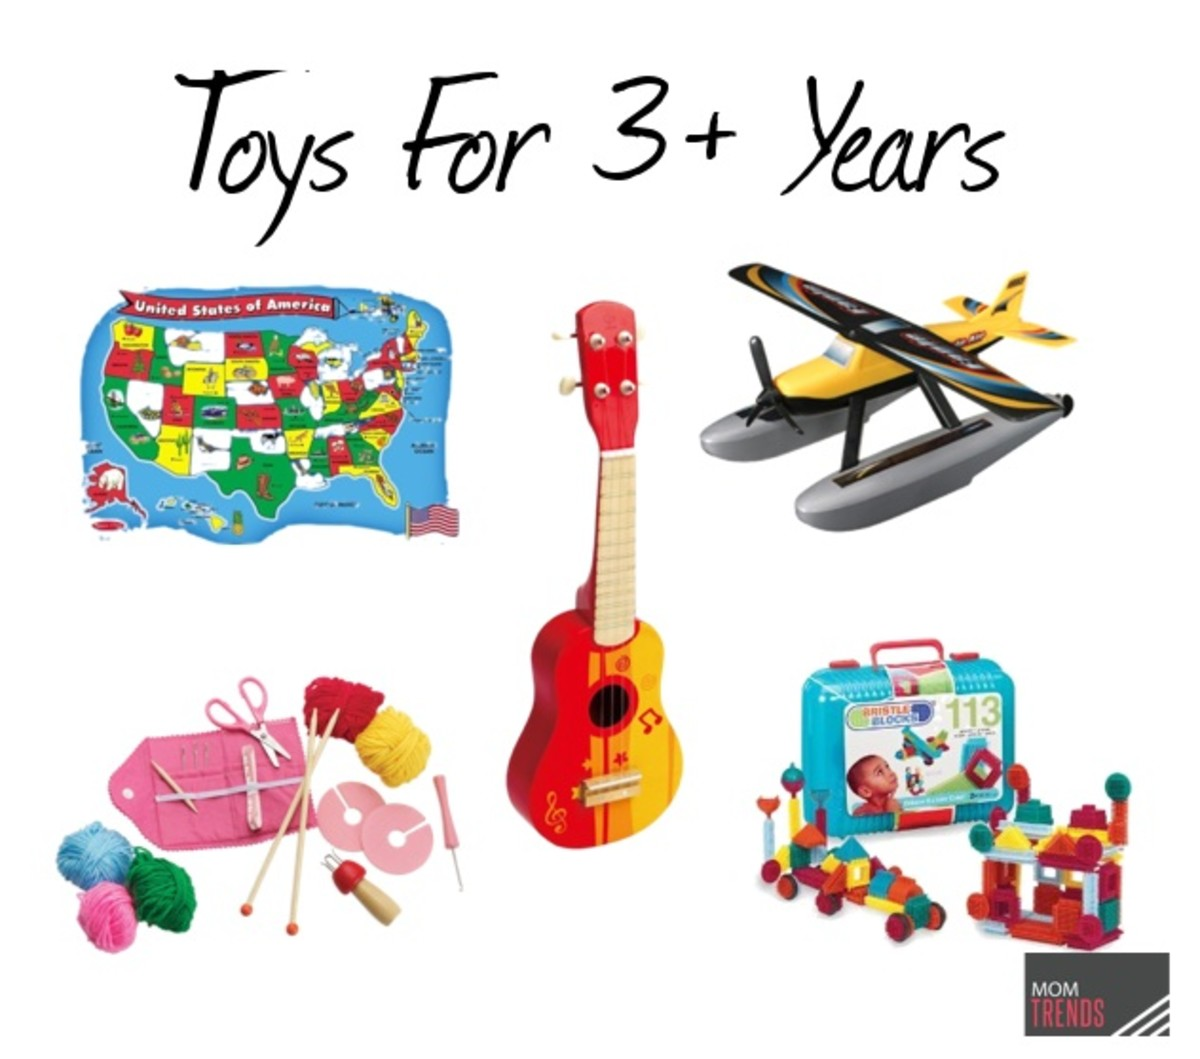 Toys for 3+